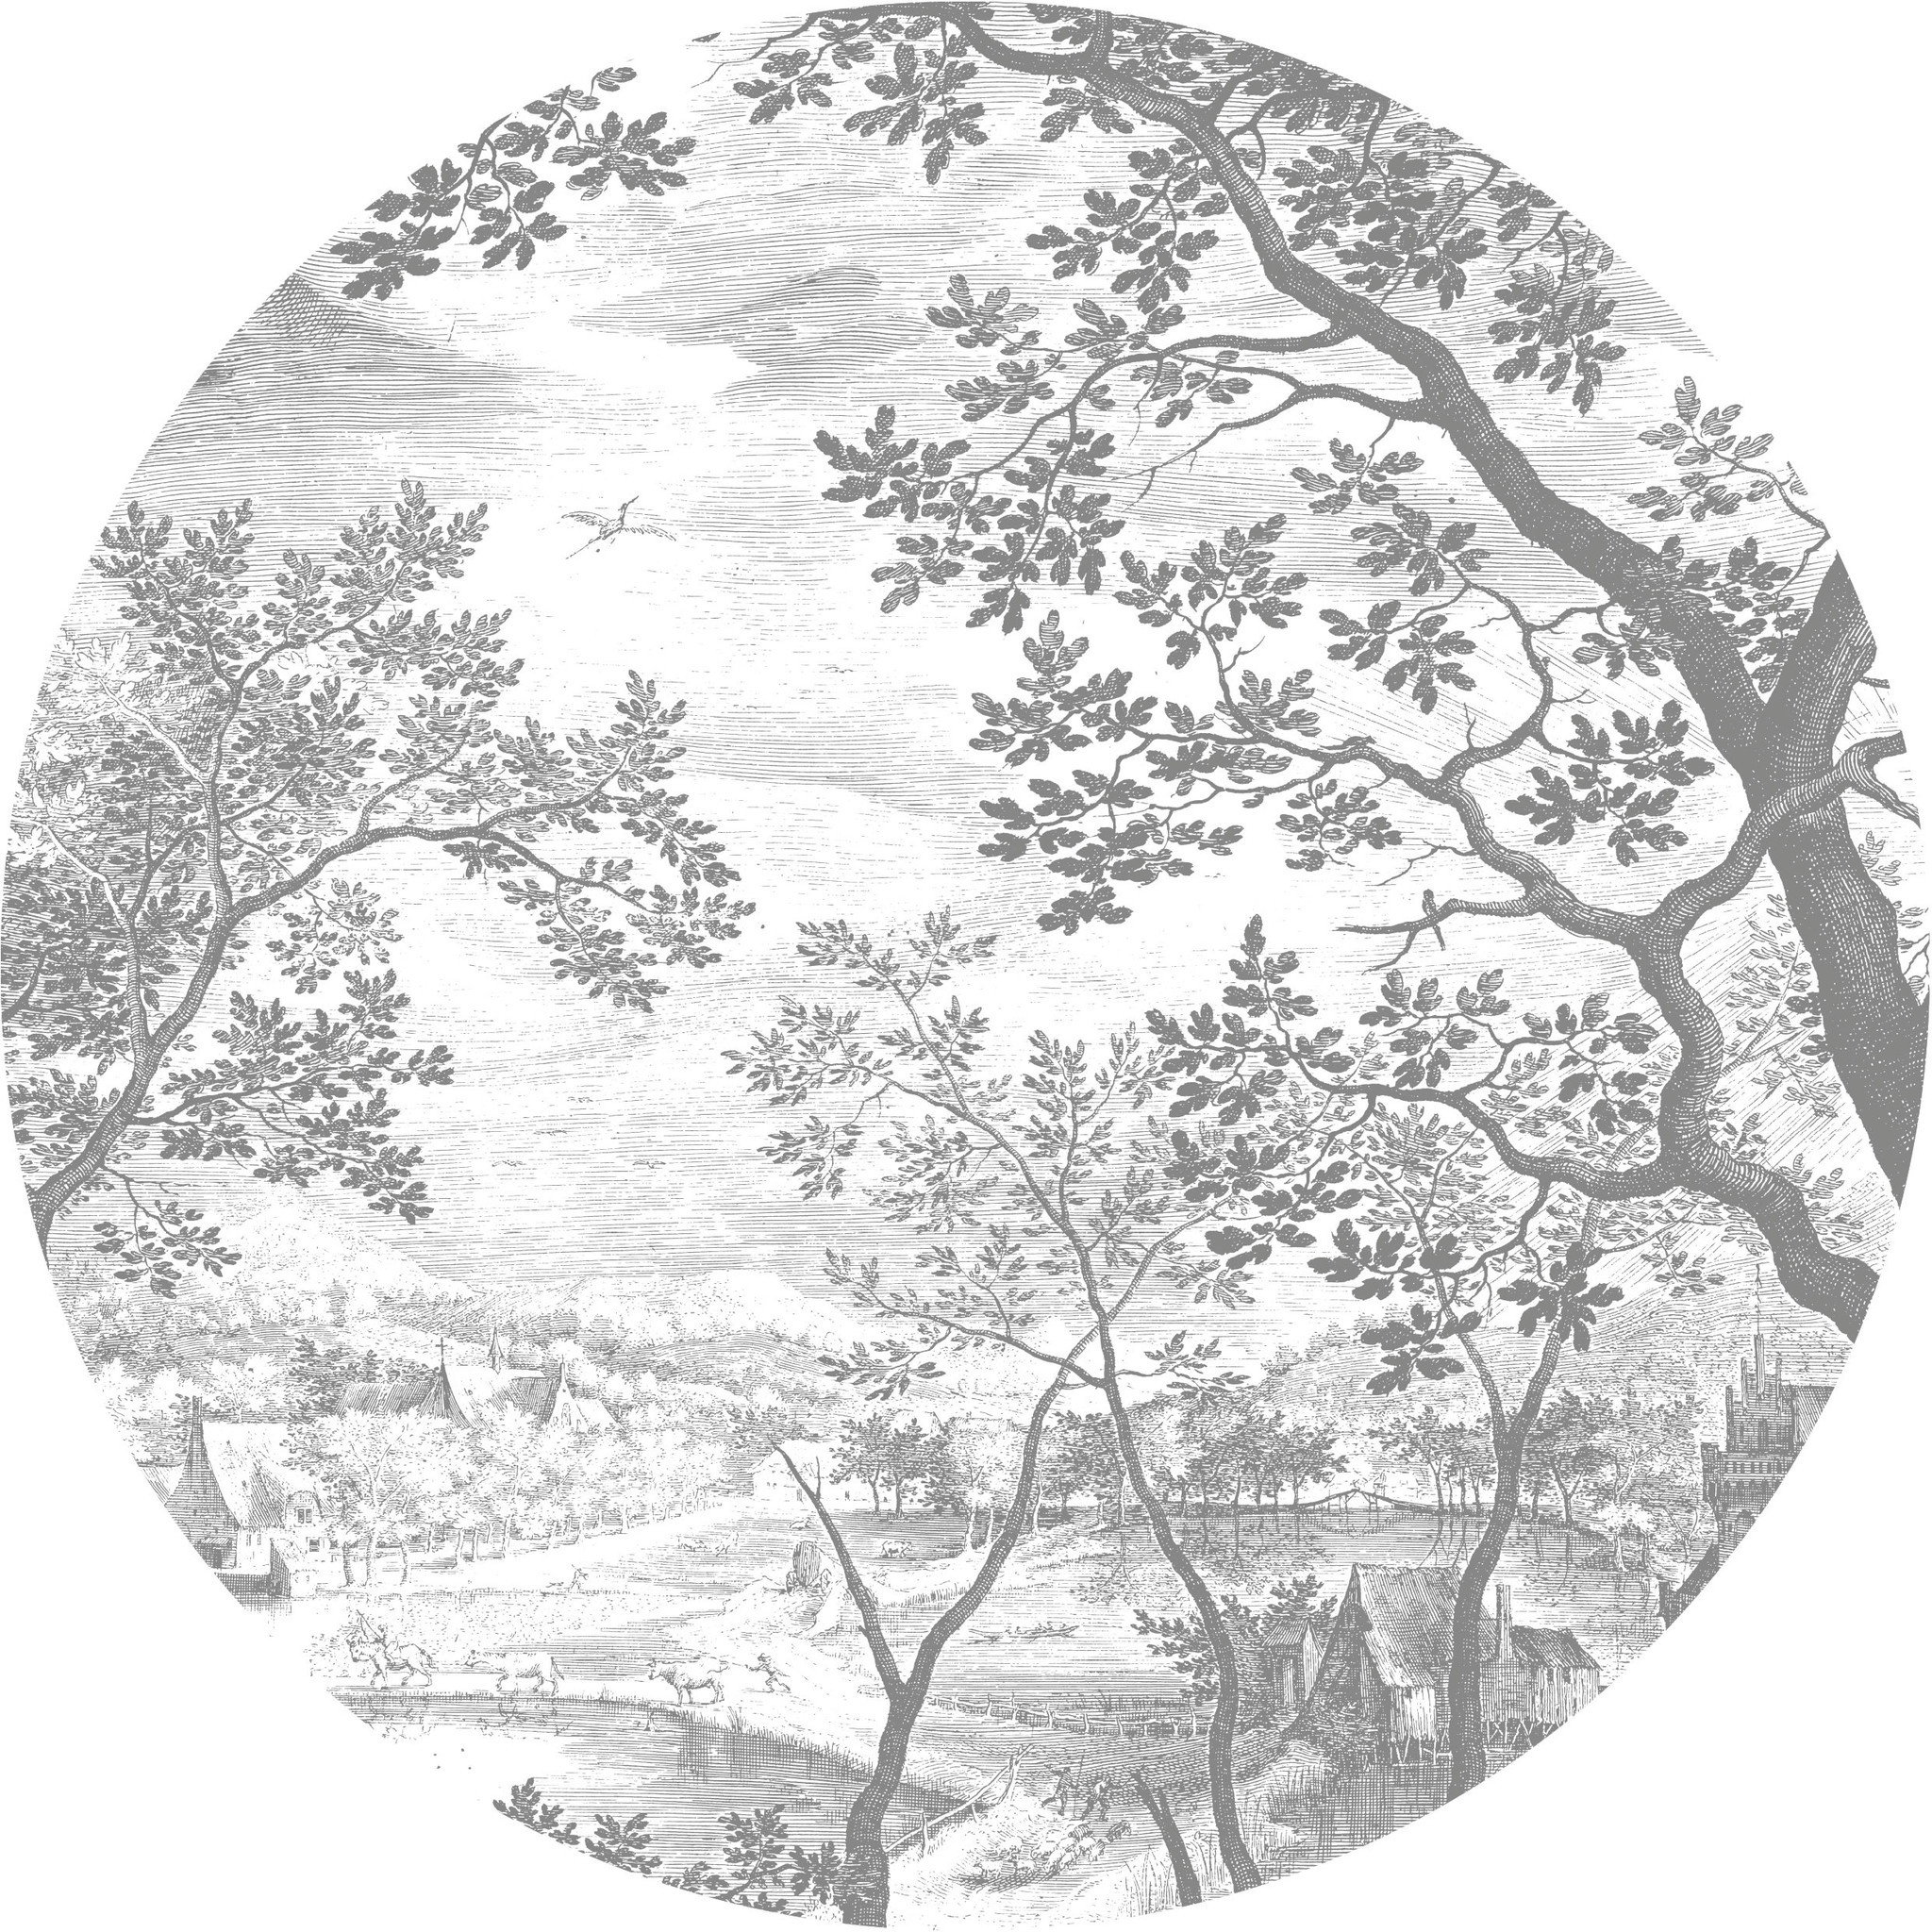 KEK Wallpaper Circle, Behangcirkel Engraved Landscape, ø 190 cm-8719743887732-312